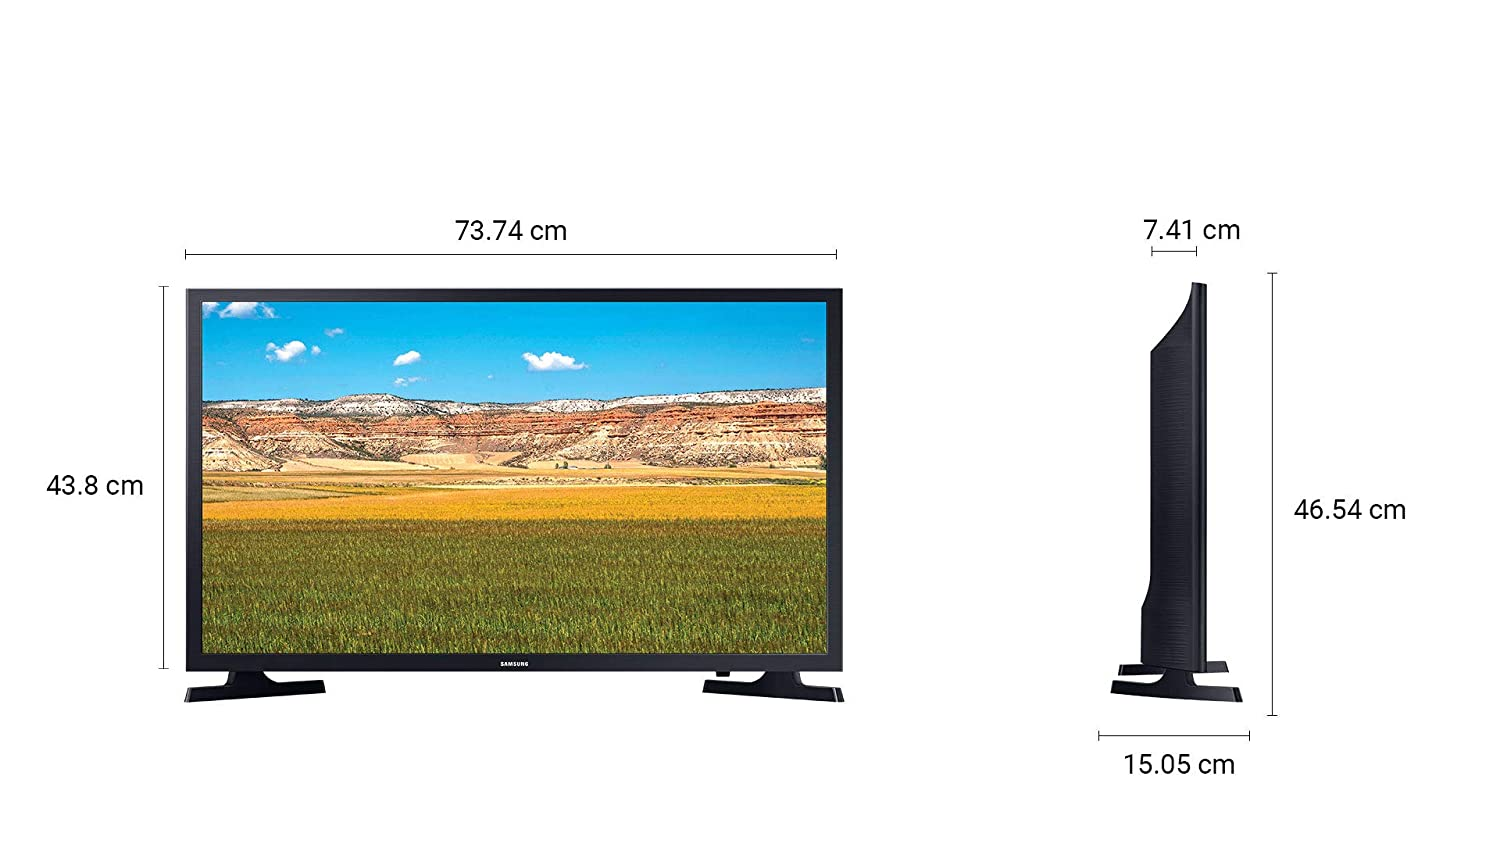 Samsung 80 cm (32 Inches) HD Ready Smart LED TV